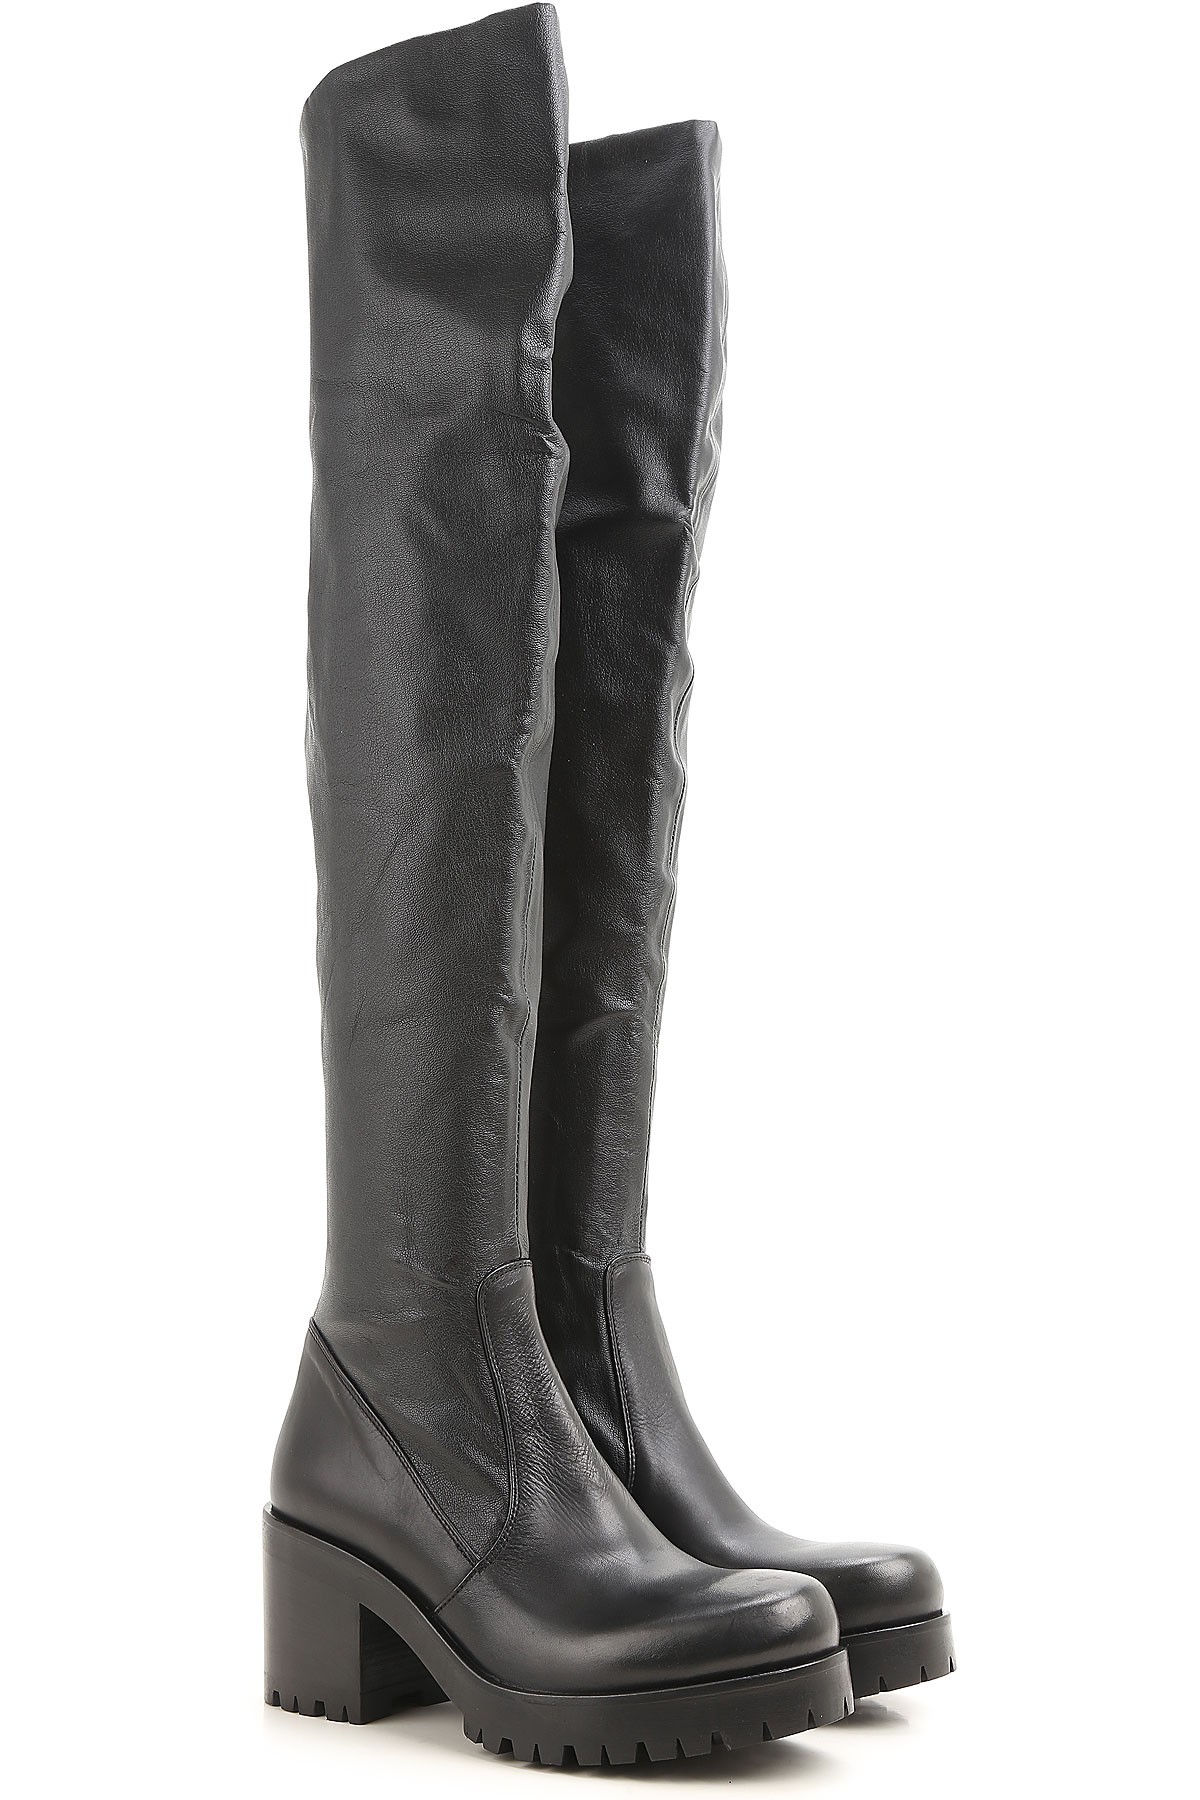 Image of Strategia Boots for Women, Booties, Black, Leather, 2017, 10 8